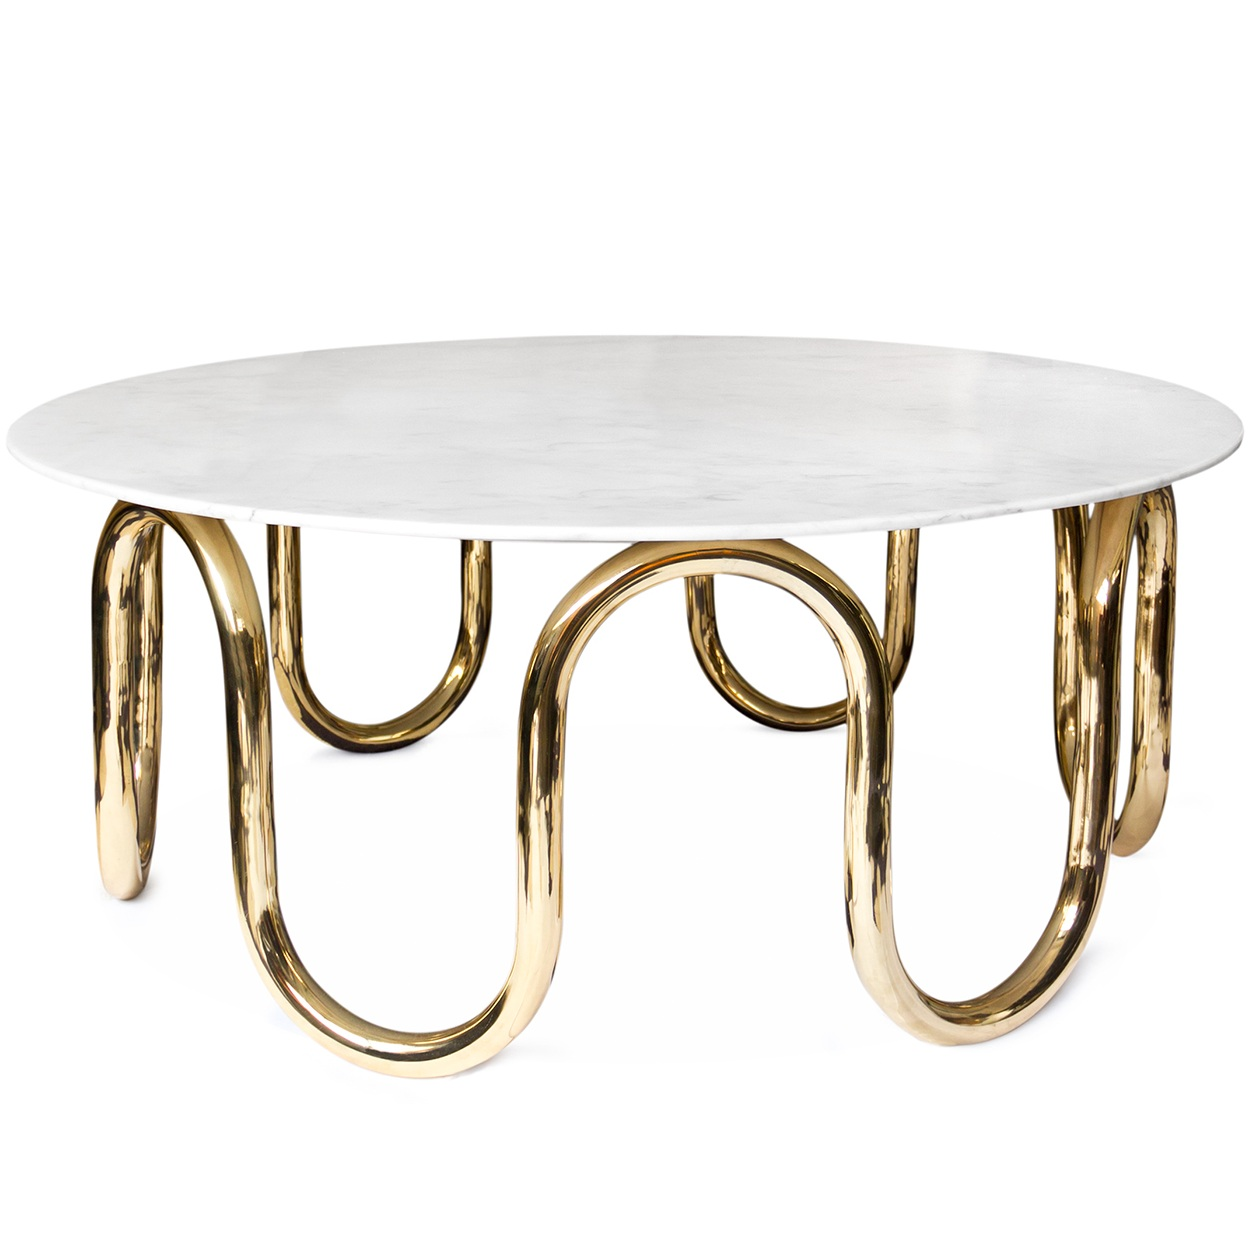 Scalinatella+Cocktail+Table+-Jonathan Adler